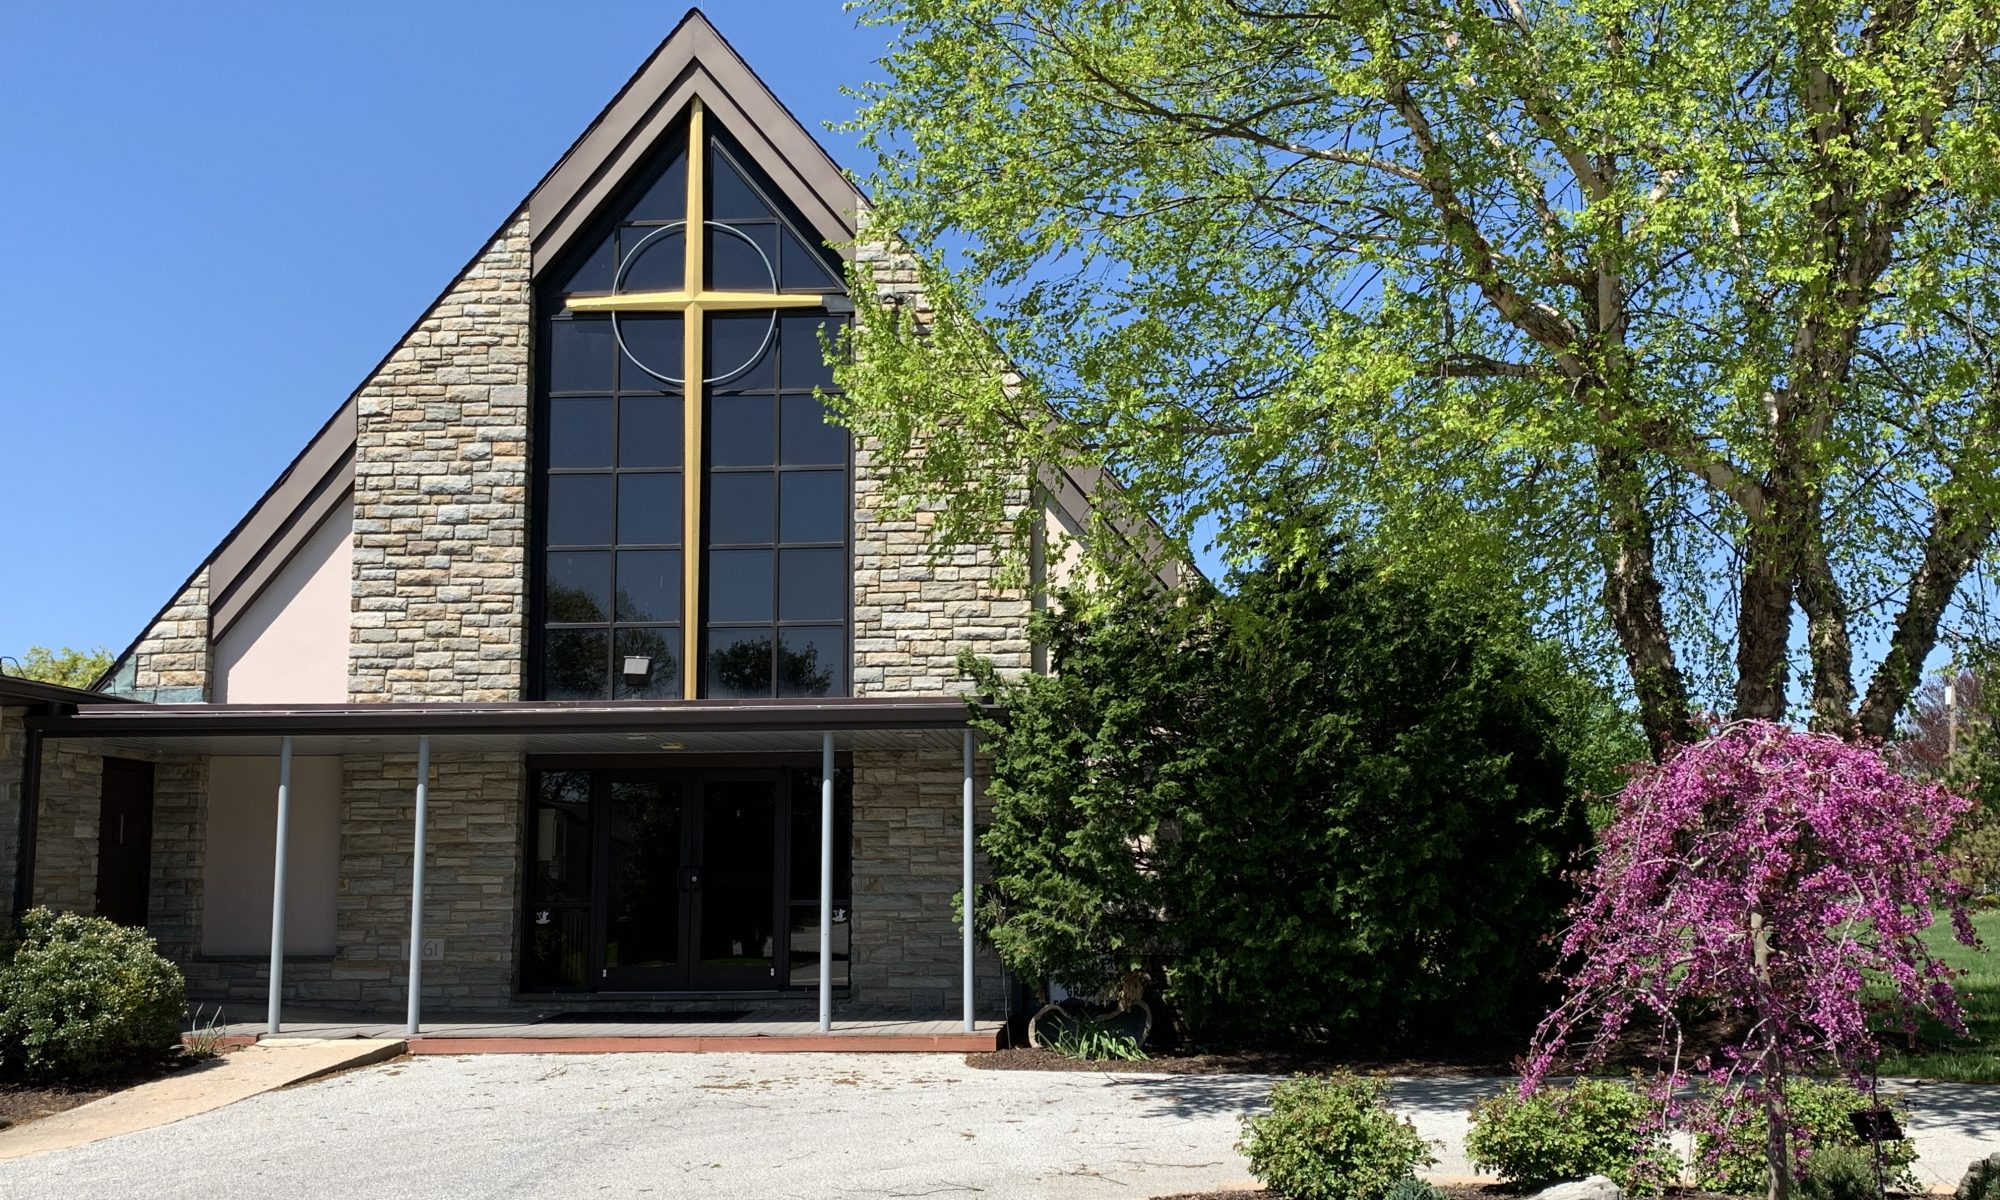 St. Christopher's Episcopal Church